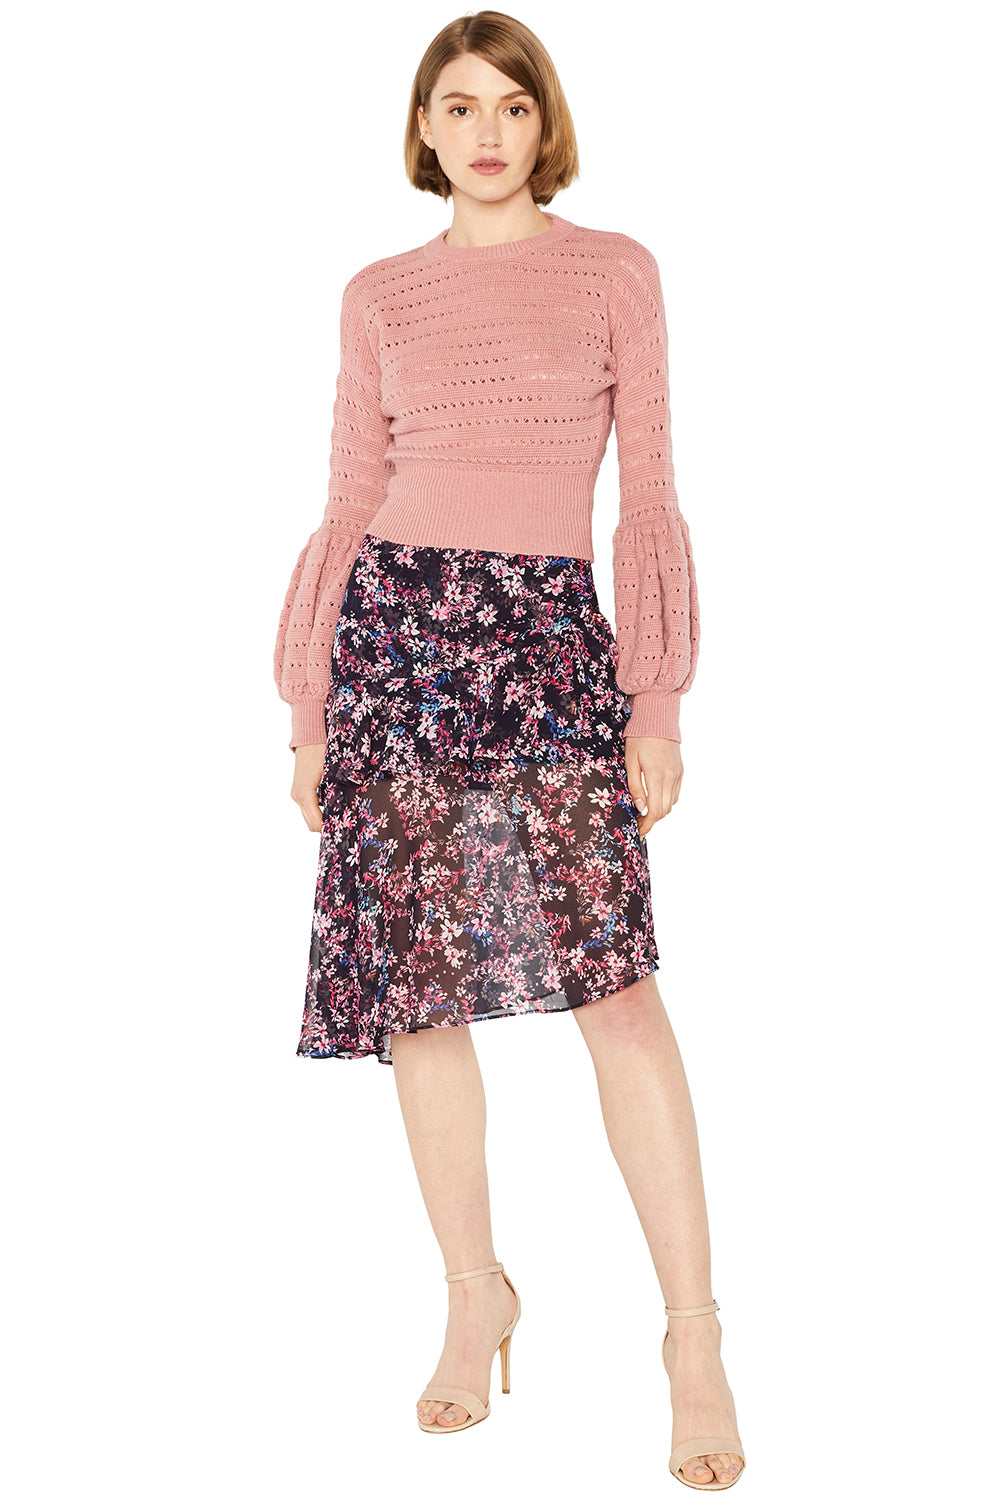 CYRENE SKIRT - MISA Los Angeles